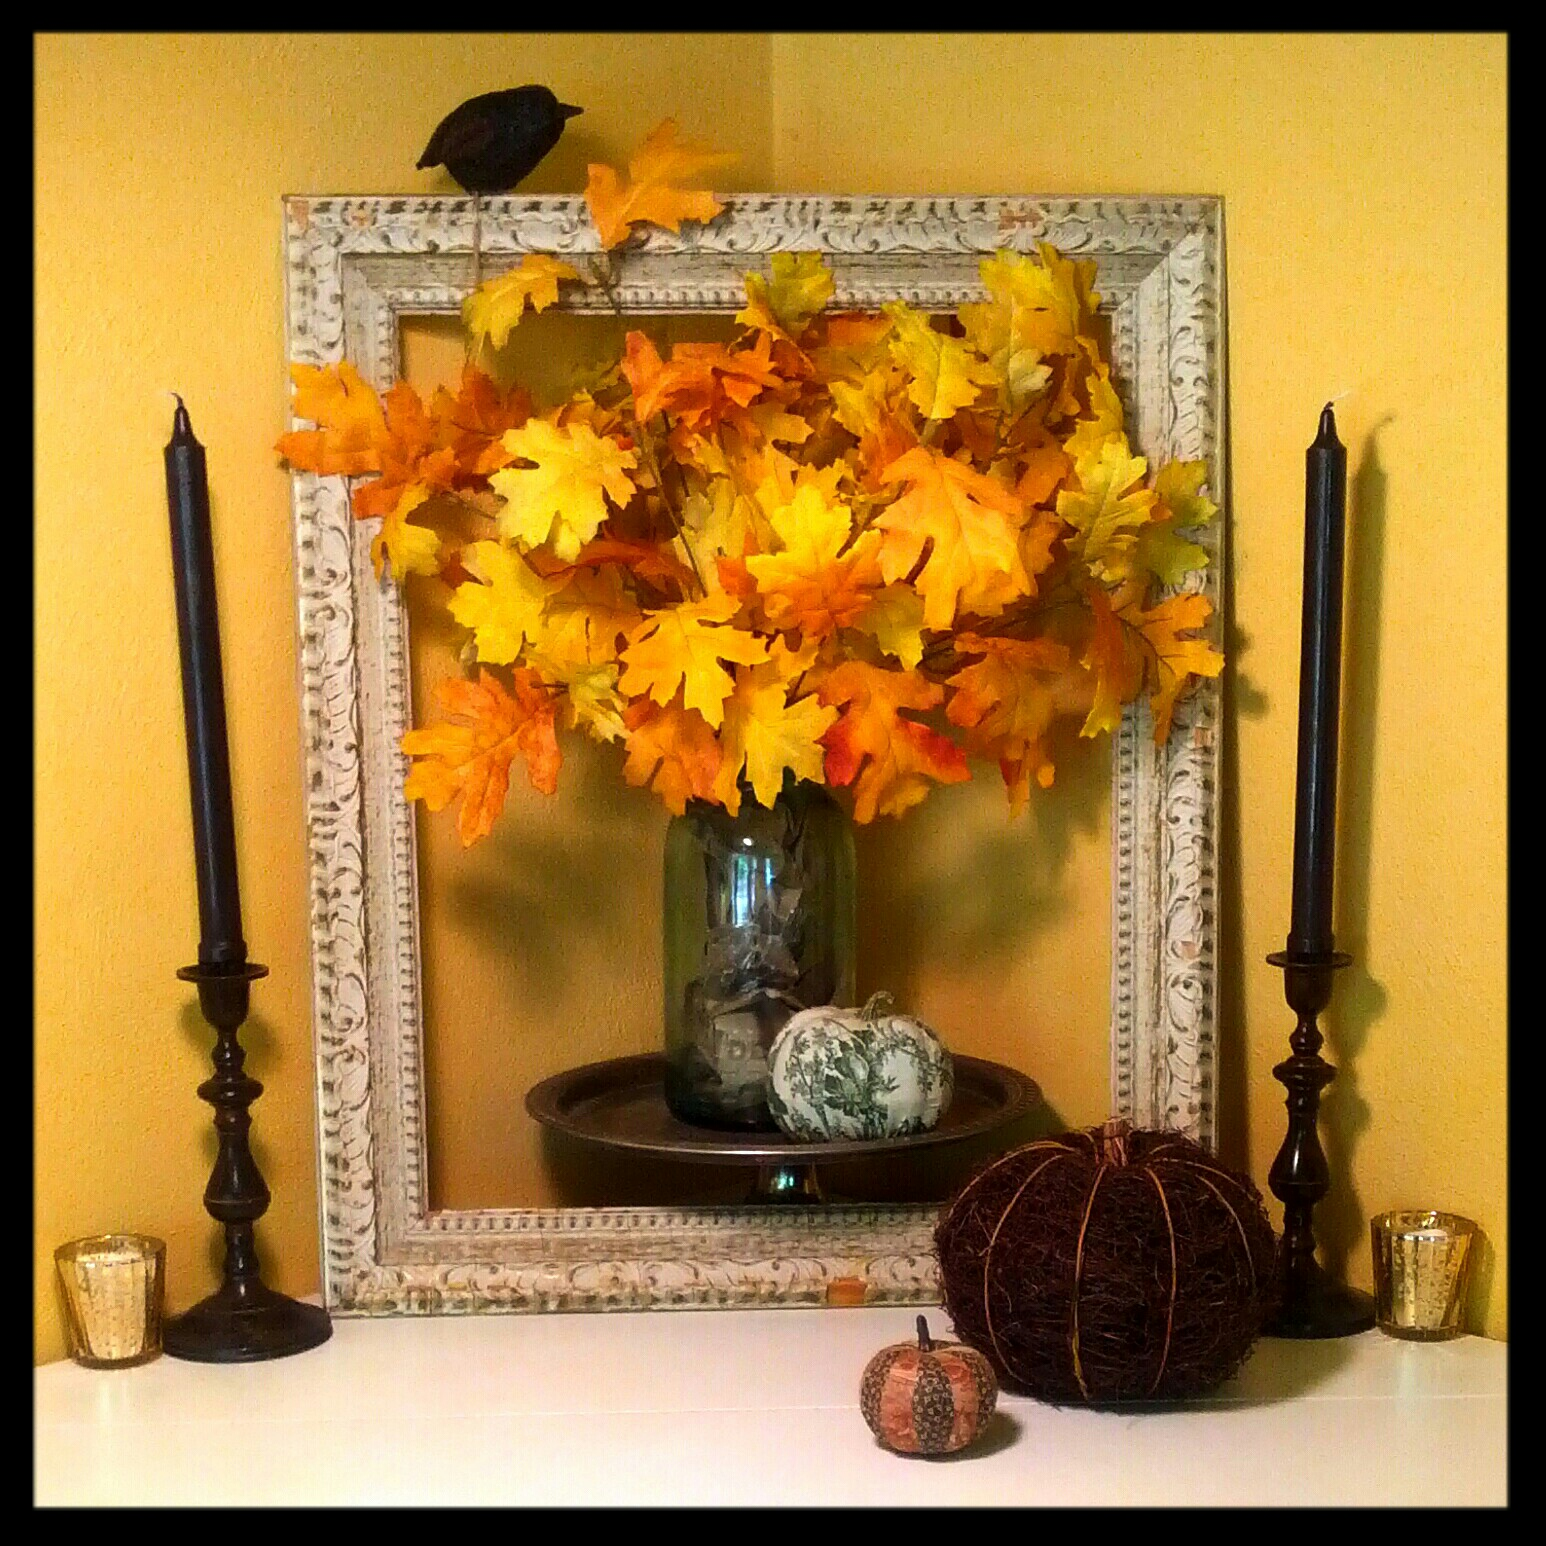 Fall mantel decor with country cottage style vibe, featuring autumn leaves in a mason jar, wicker and handmade fabric pumpkins, mercury glass votives and an antique frame. A black raven bird and dark brown candlesticks with black taper candles add a touch of Halloween fun to this warm & cozy decorating scheme. By Shalom Schultz Designs.